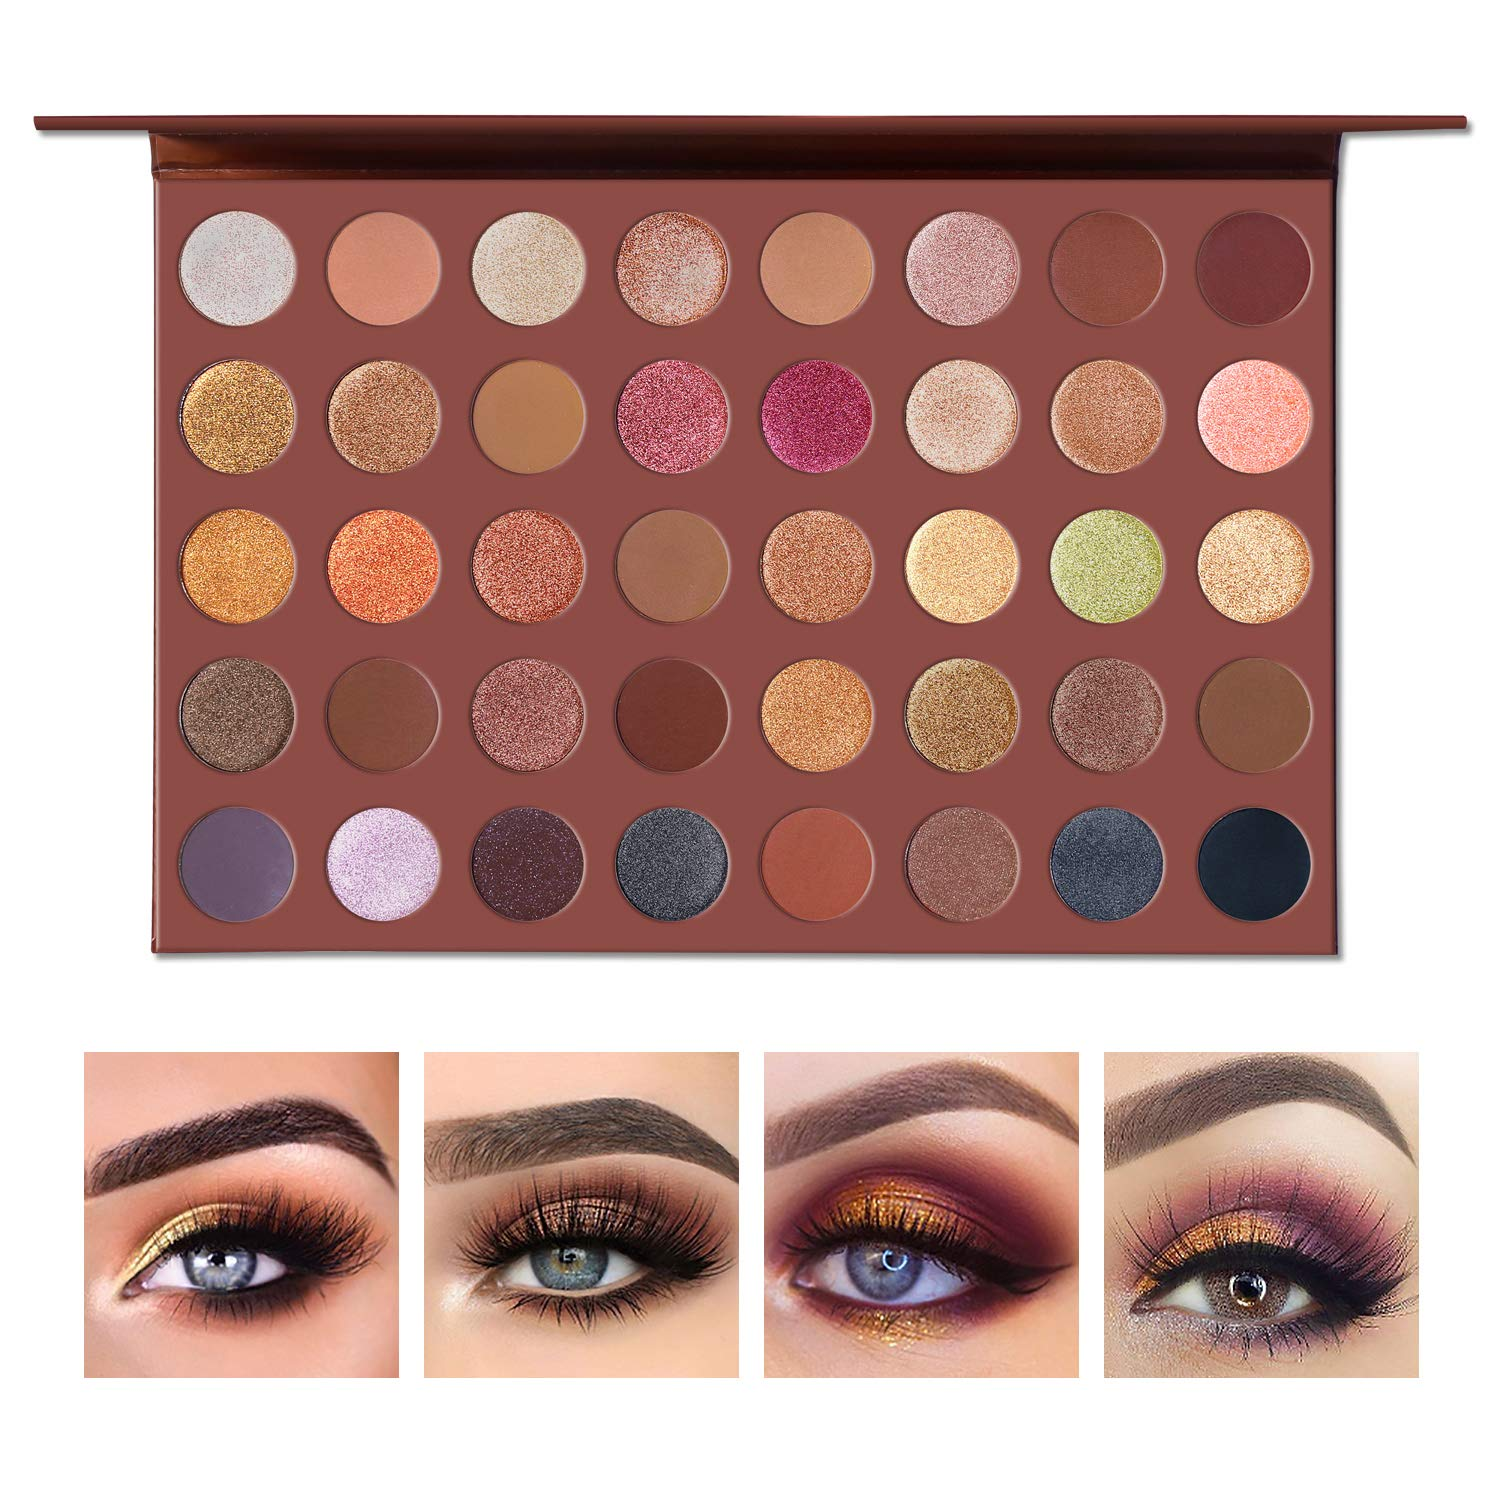 Ucanbe Pro Choco Fusion Bronze Eyeshadow Makeup Palette 40 Highly Pigmented Metallic Matte Shimmer Glitter Ultra Neutral Blendable Creamy Eye Shadow